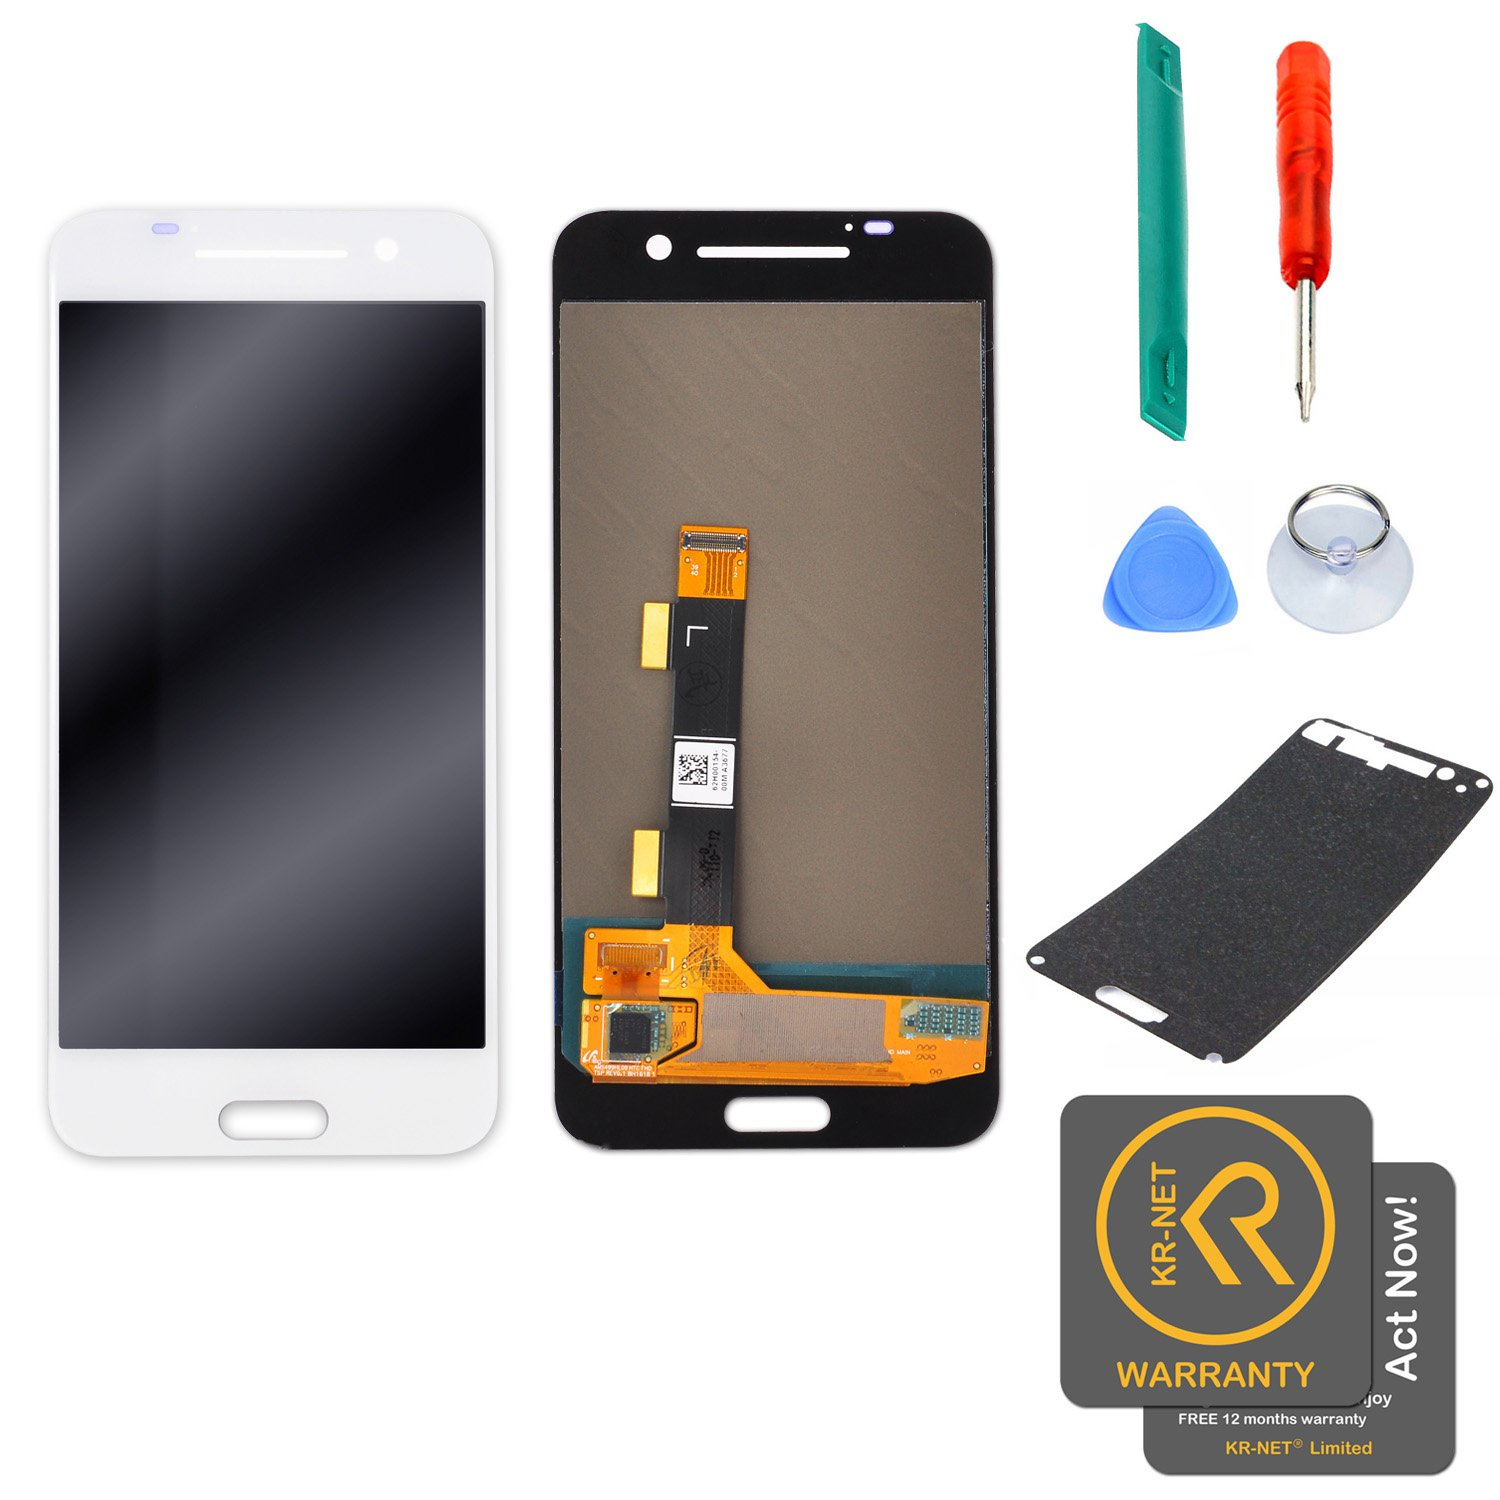 KR-NET Display LCD Touch Screen Digitizer Assembly Replacement for HTC One A9 w/Repair Tools (White)